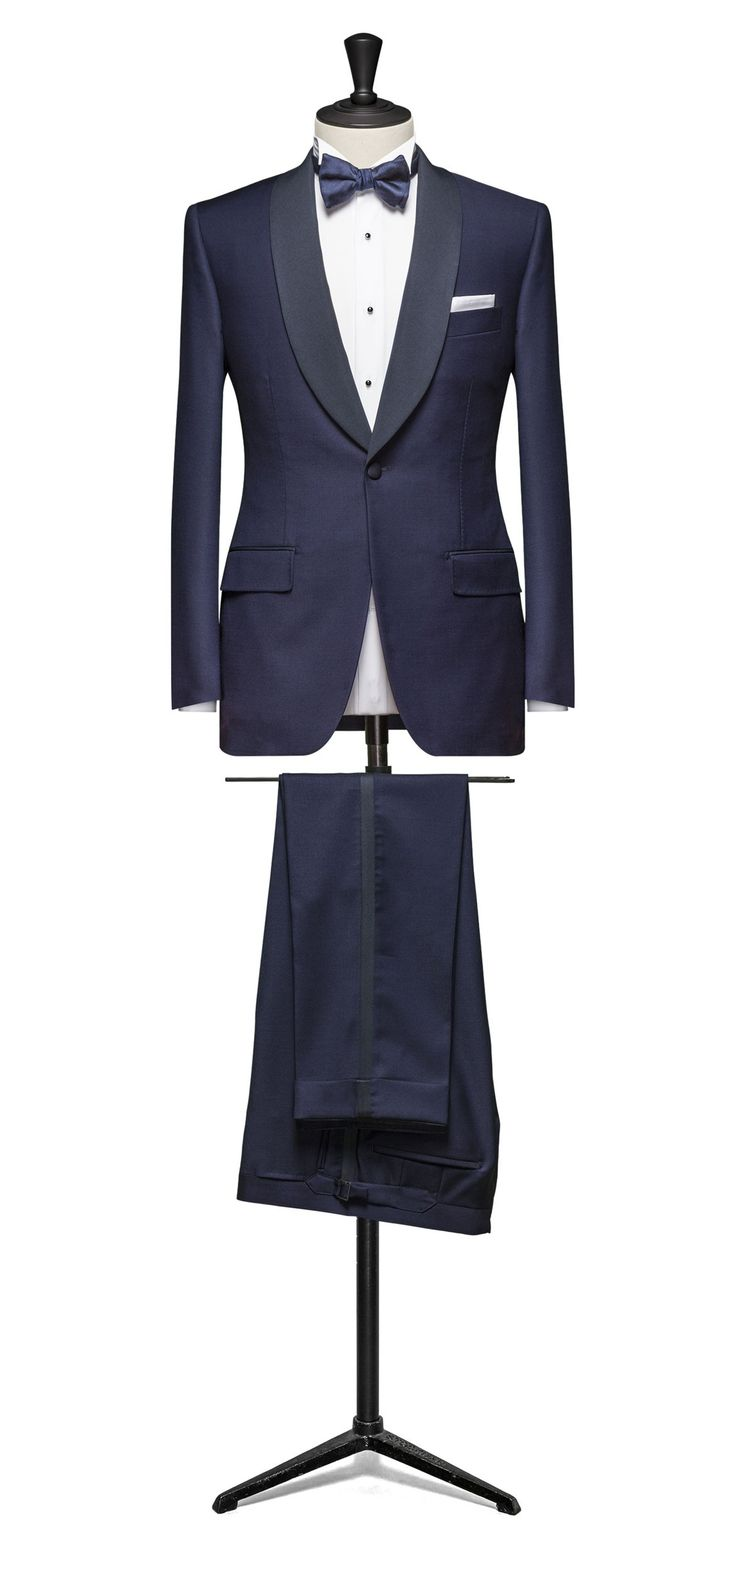 Midnight blue dinner suit. A classic shawl collar dinner suit in a light weight midnight blue wool with a classic 1 button style jacket. Styled with a classic lapel & side vents Teamed with a white dress shirt and navy bow tie. A choice of linings to and trims are available 2 piece made to measure from £795 3 piece made to measure £925 Please contact us to arrange a made-to-measure appointment to discuss your individual requirements.